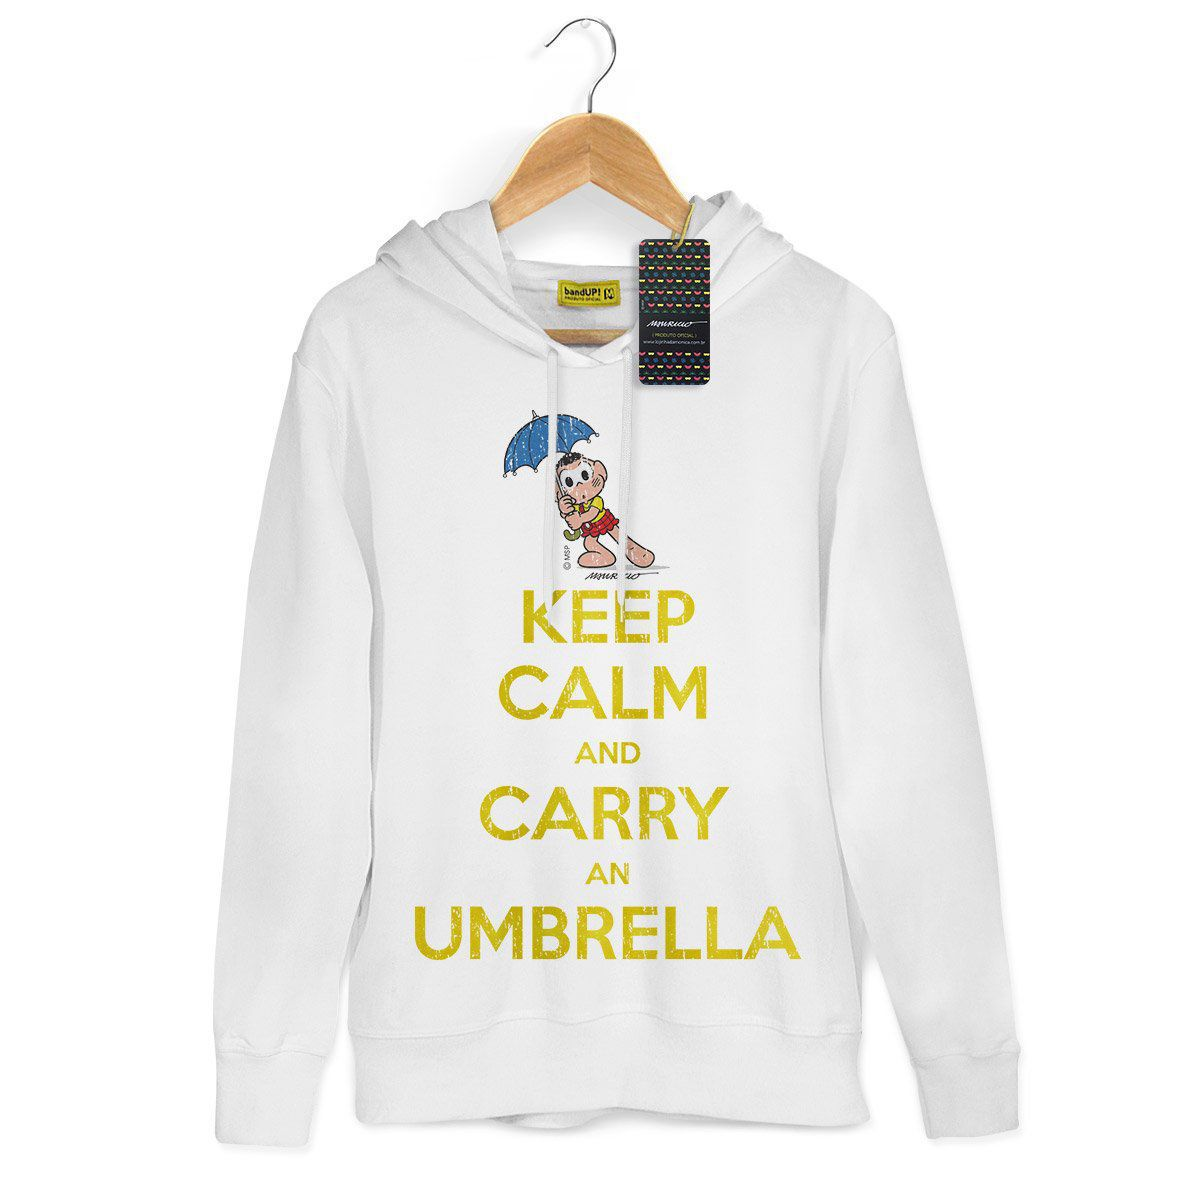 Moletom Branco Turma da Mônica Cool Keep Calm And Carry An Umbrella